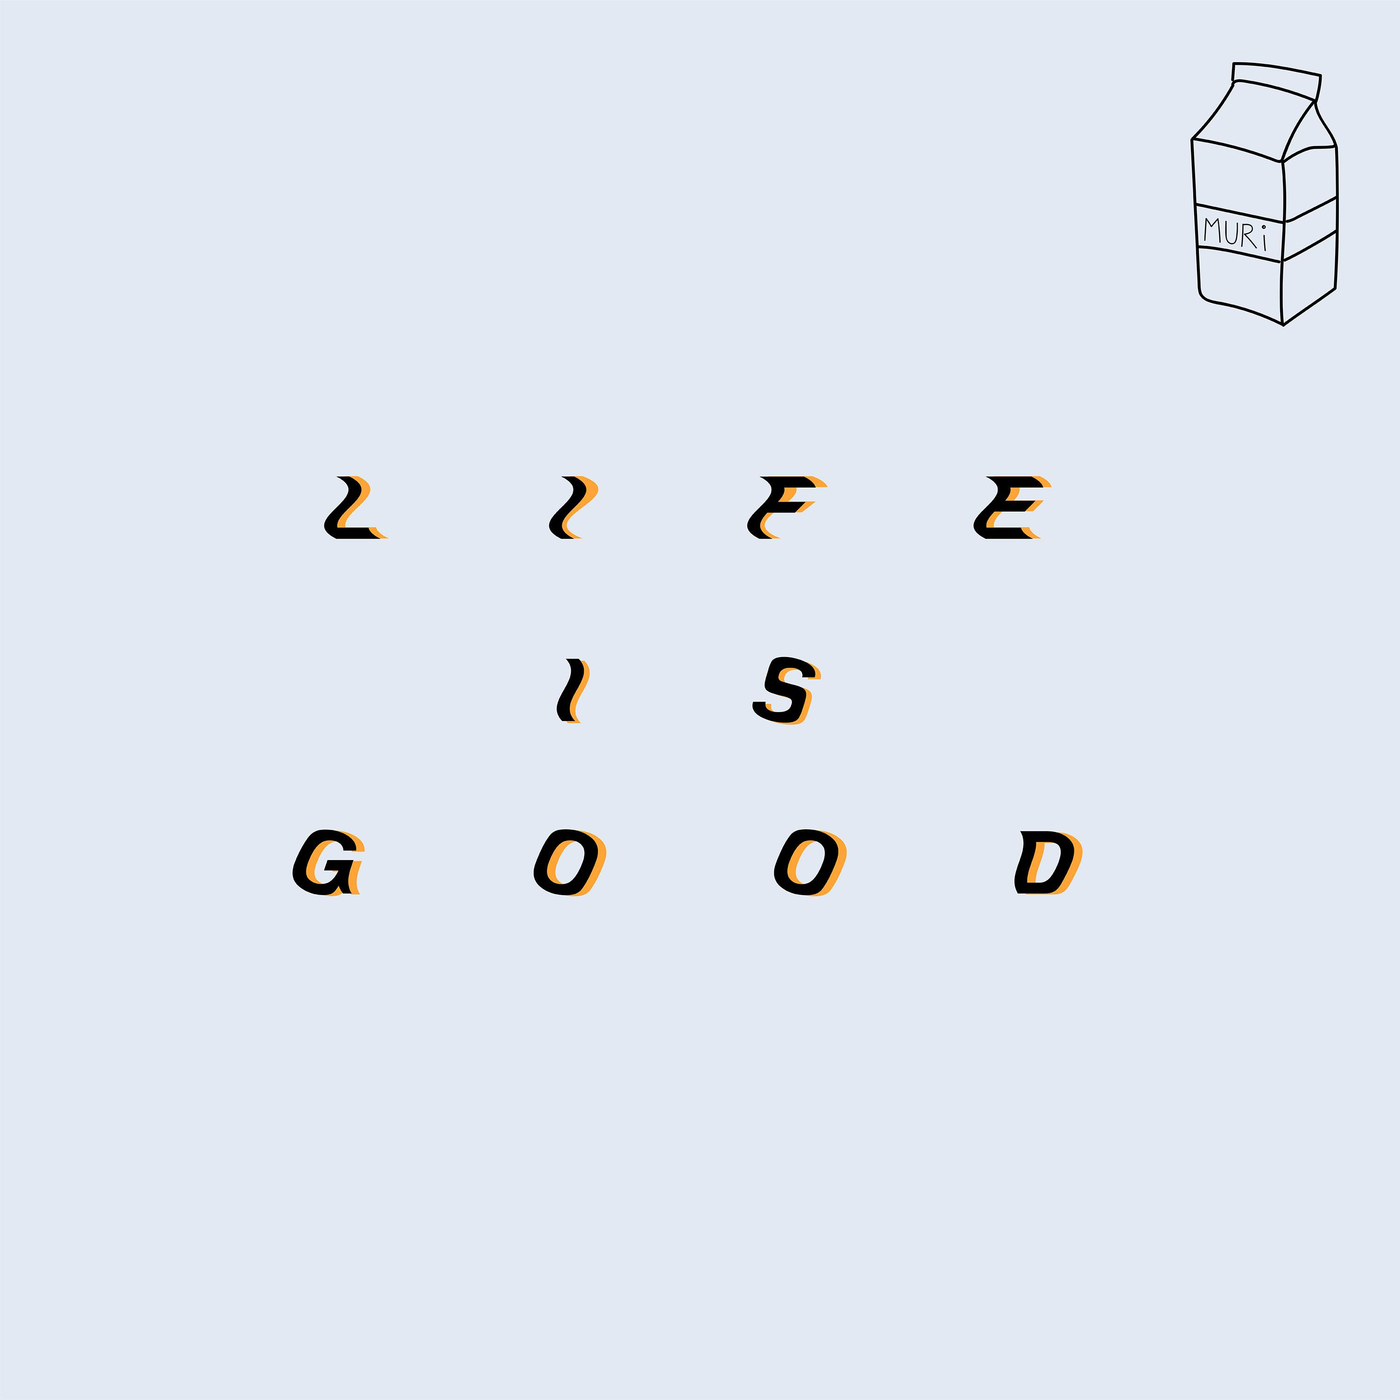 Bilmuri - lifeisgood [single] (2019)